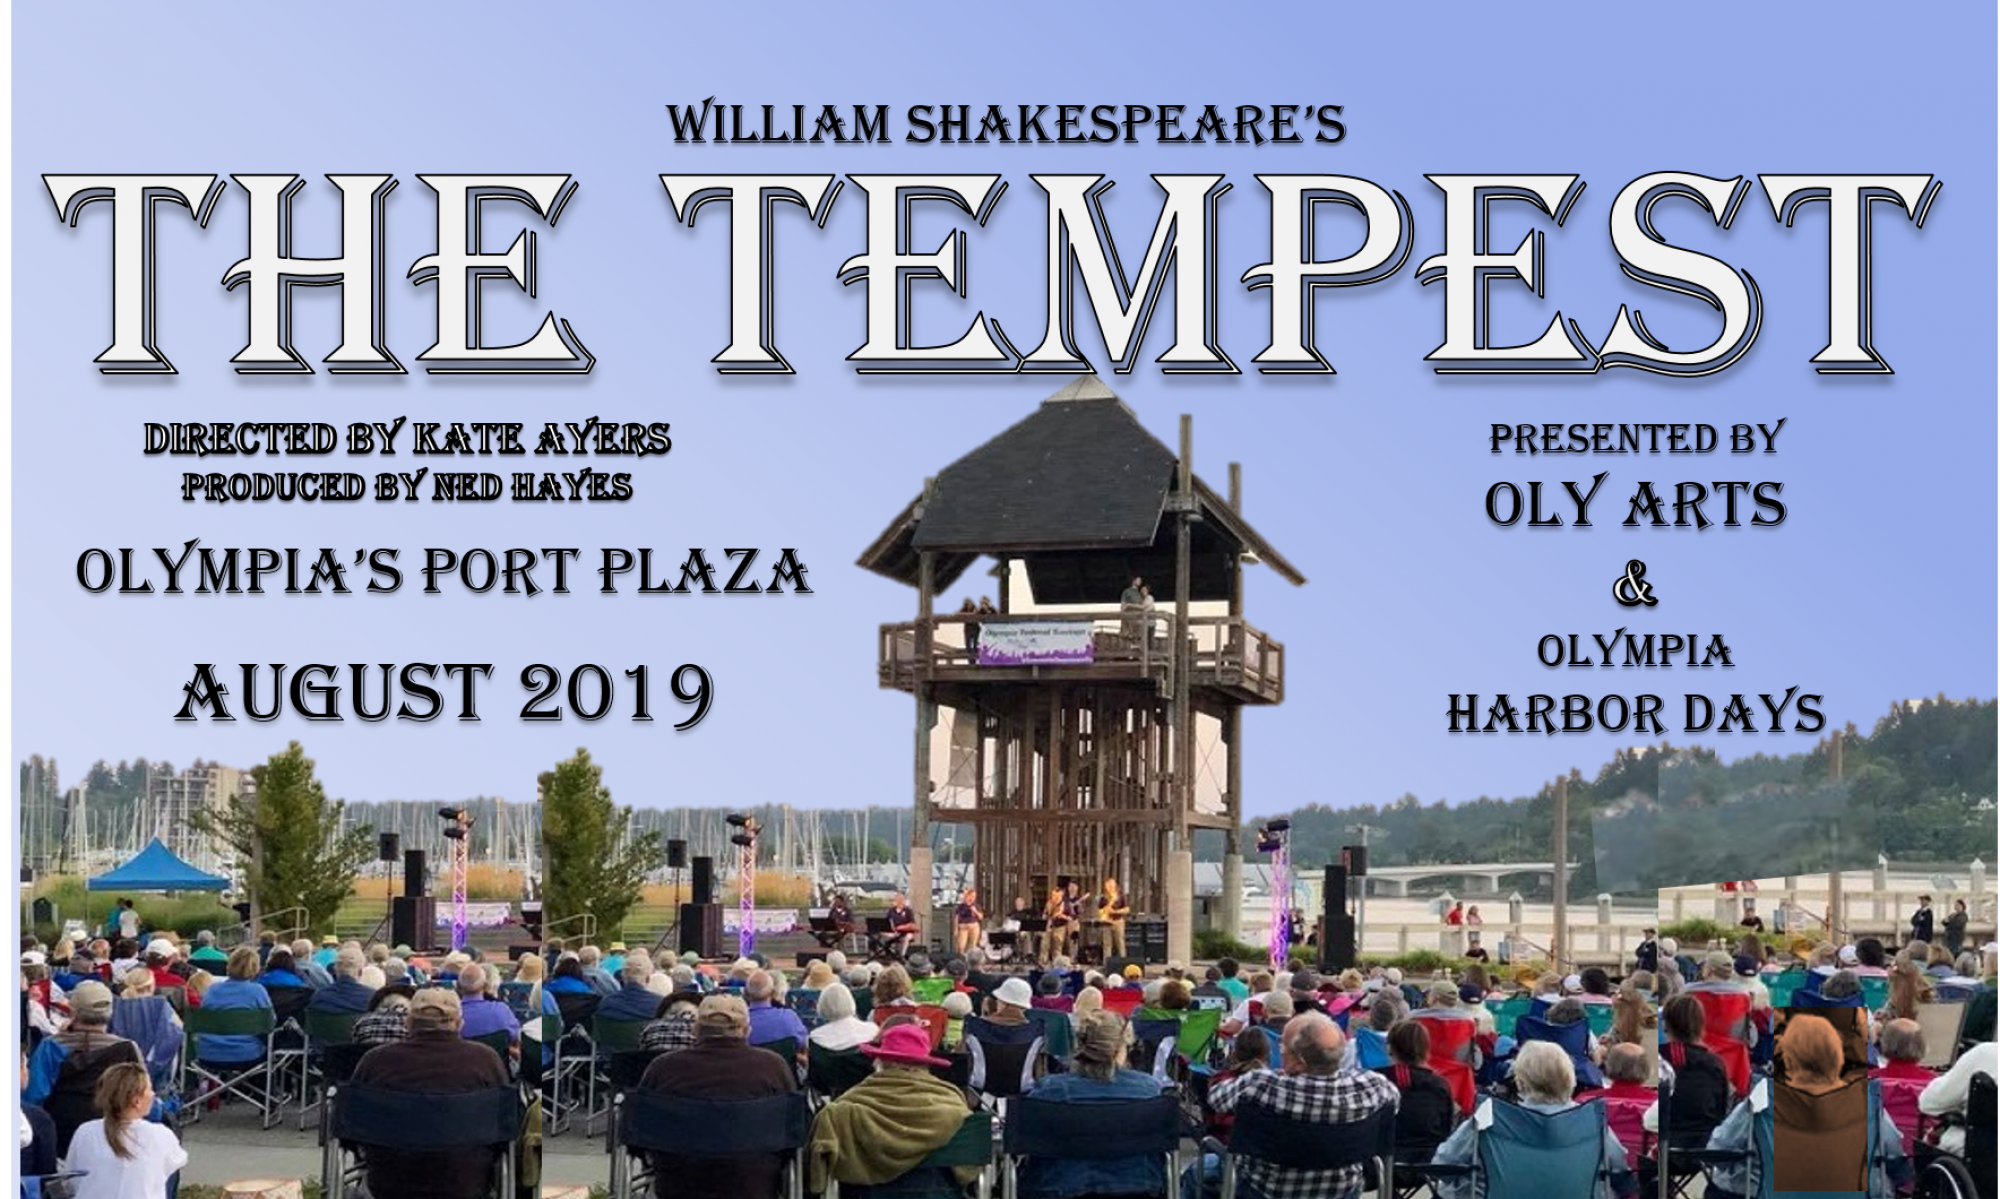 THE TEMPEST - ON STAGE SUMMER 2019 - PERFORMED AT OLYMPIAS PORT PLAZA